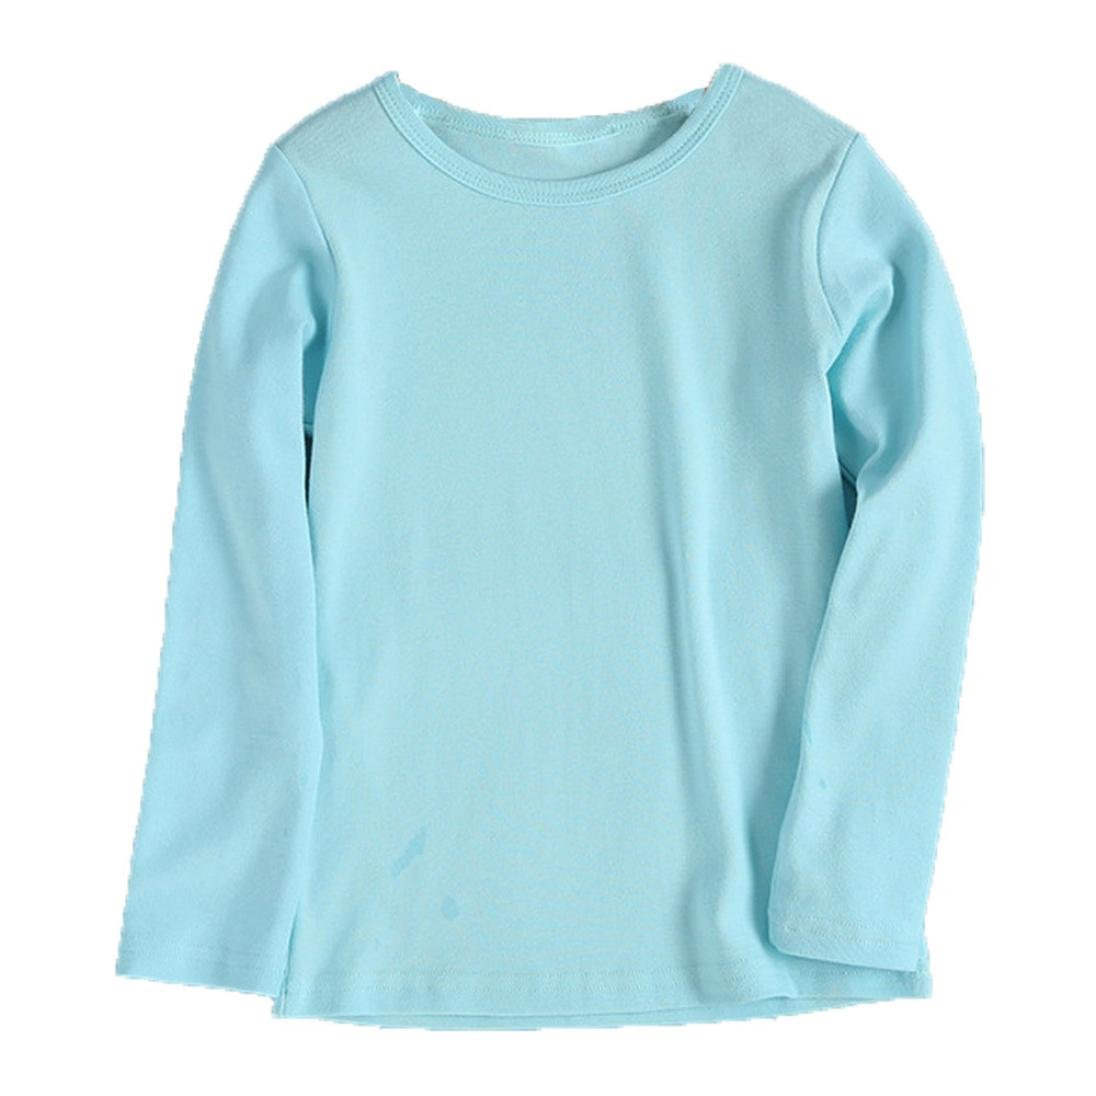 Fullfun 2-6T Baby Boys Girls Long Sleeve Cotton Shirts Clothes for Autumn Winter